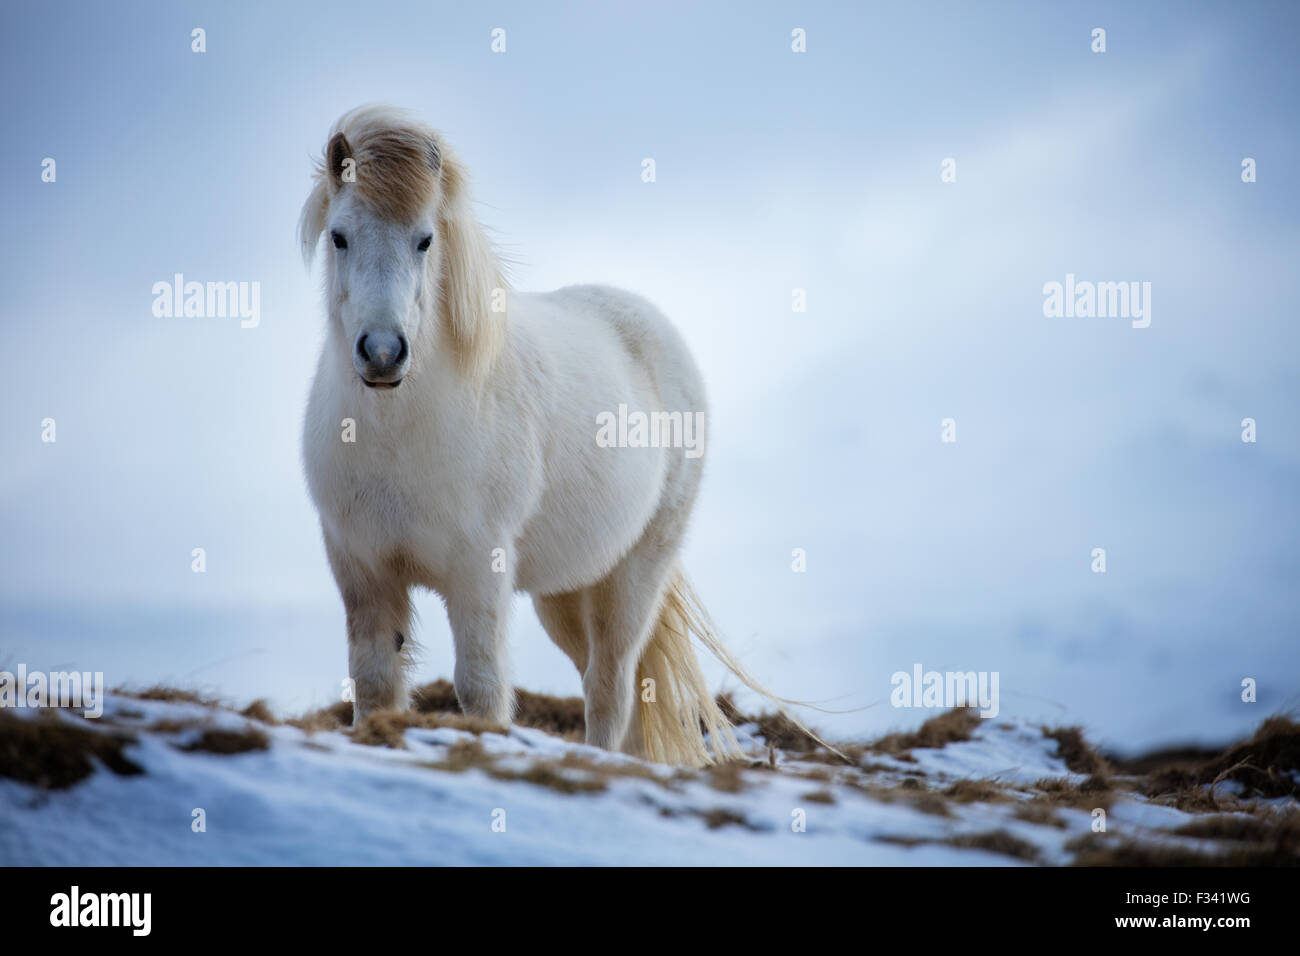 Un cheval nr Helgafell, Péninsule de Snaefellsness, Islande Photo Stock